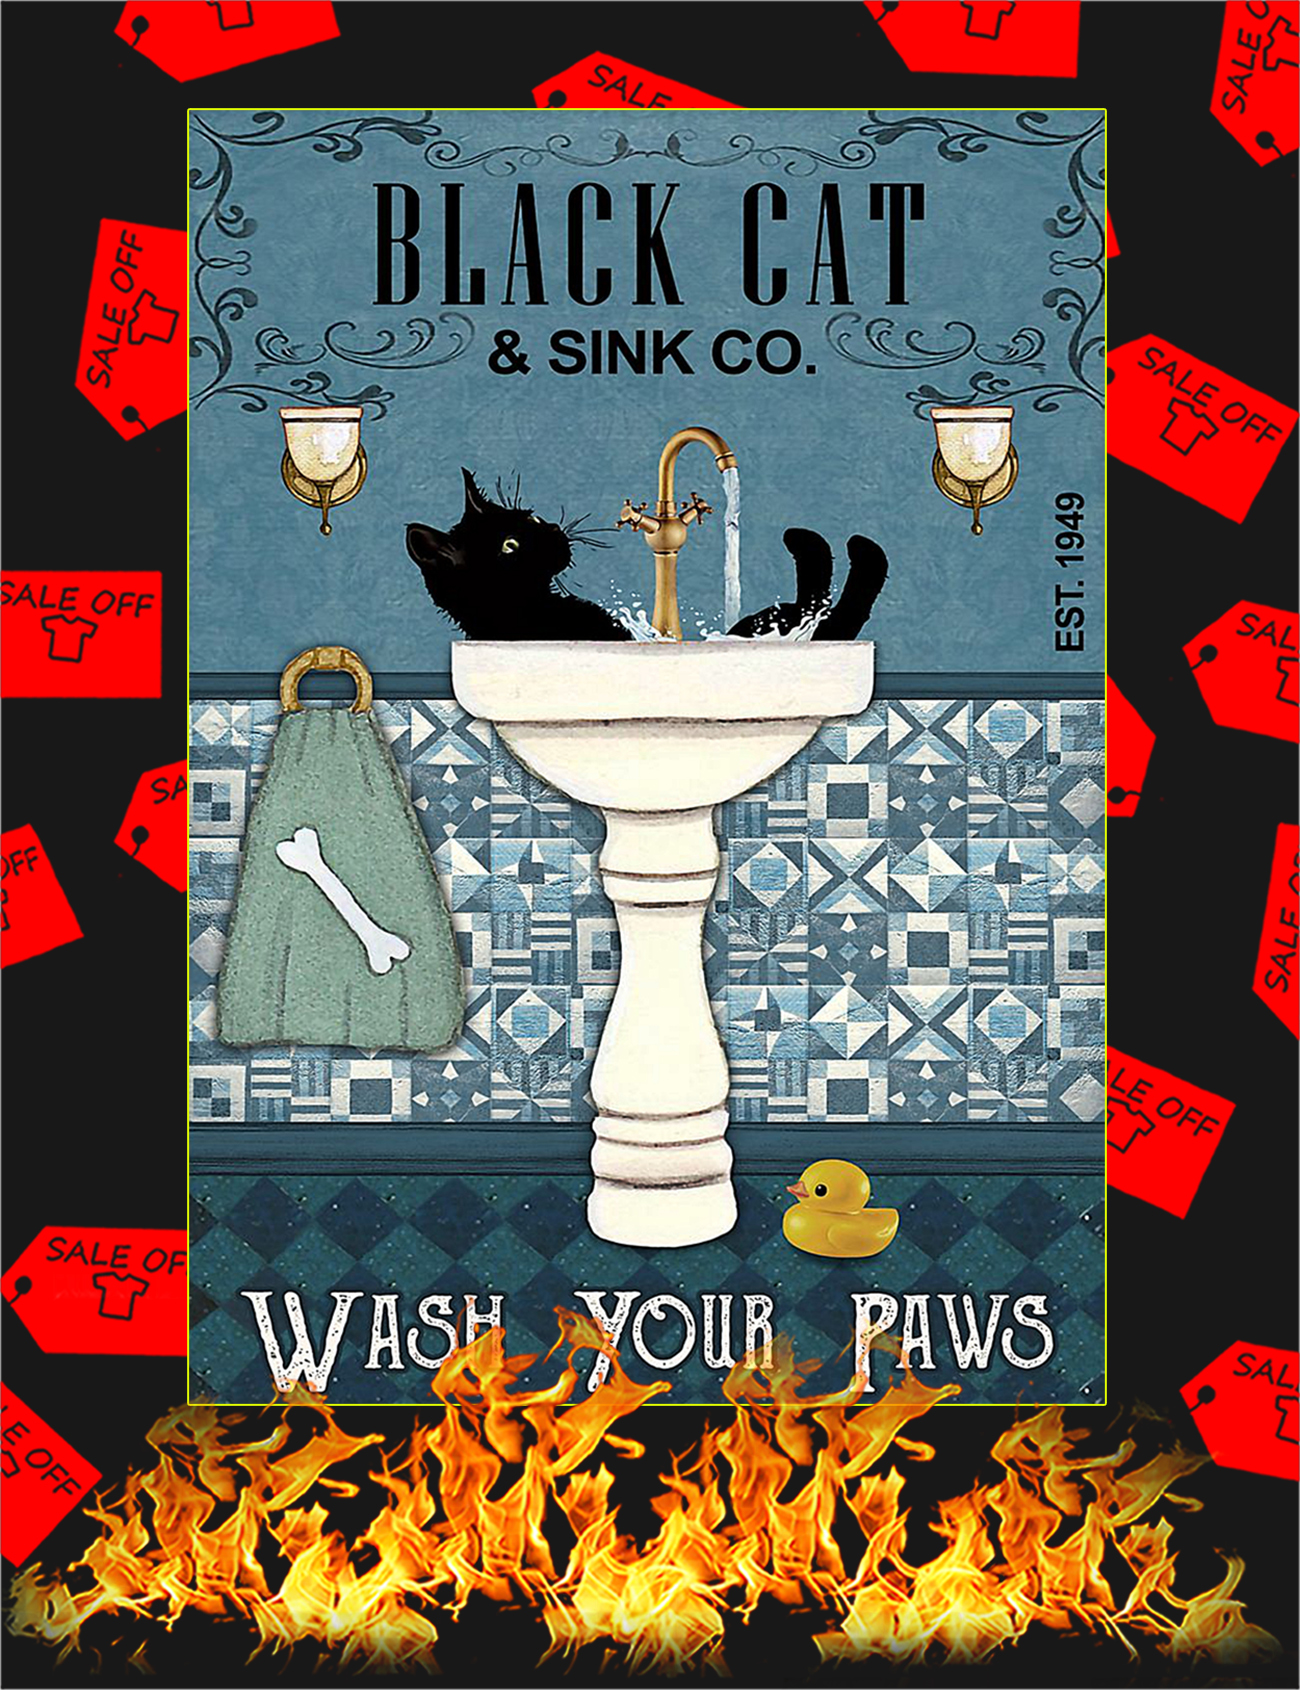 Black cat sink co wash your paws poster - A1